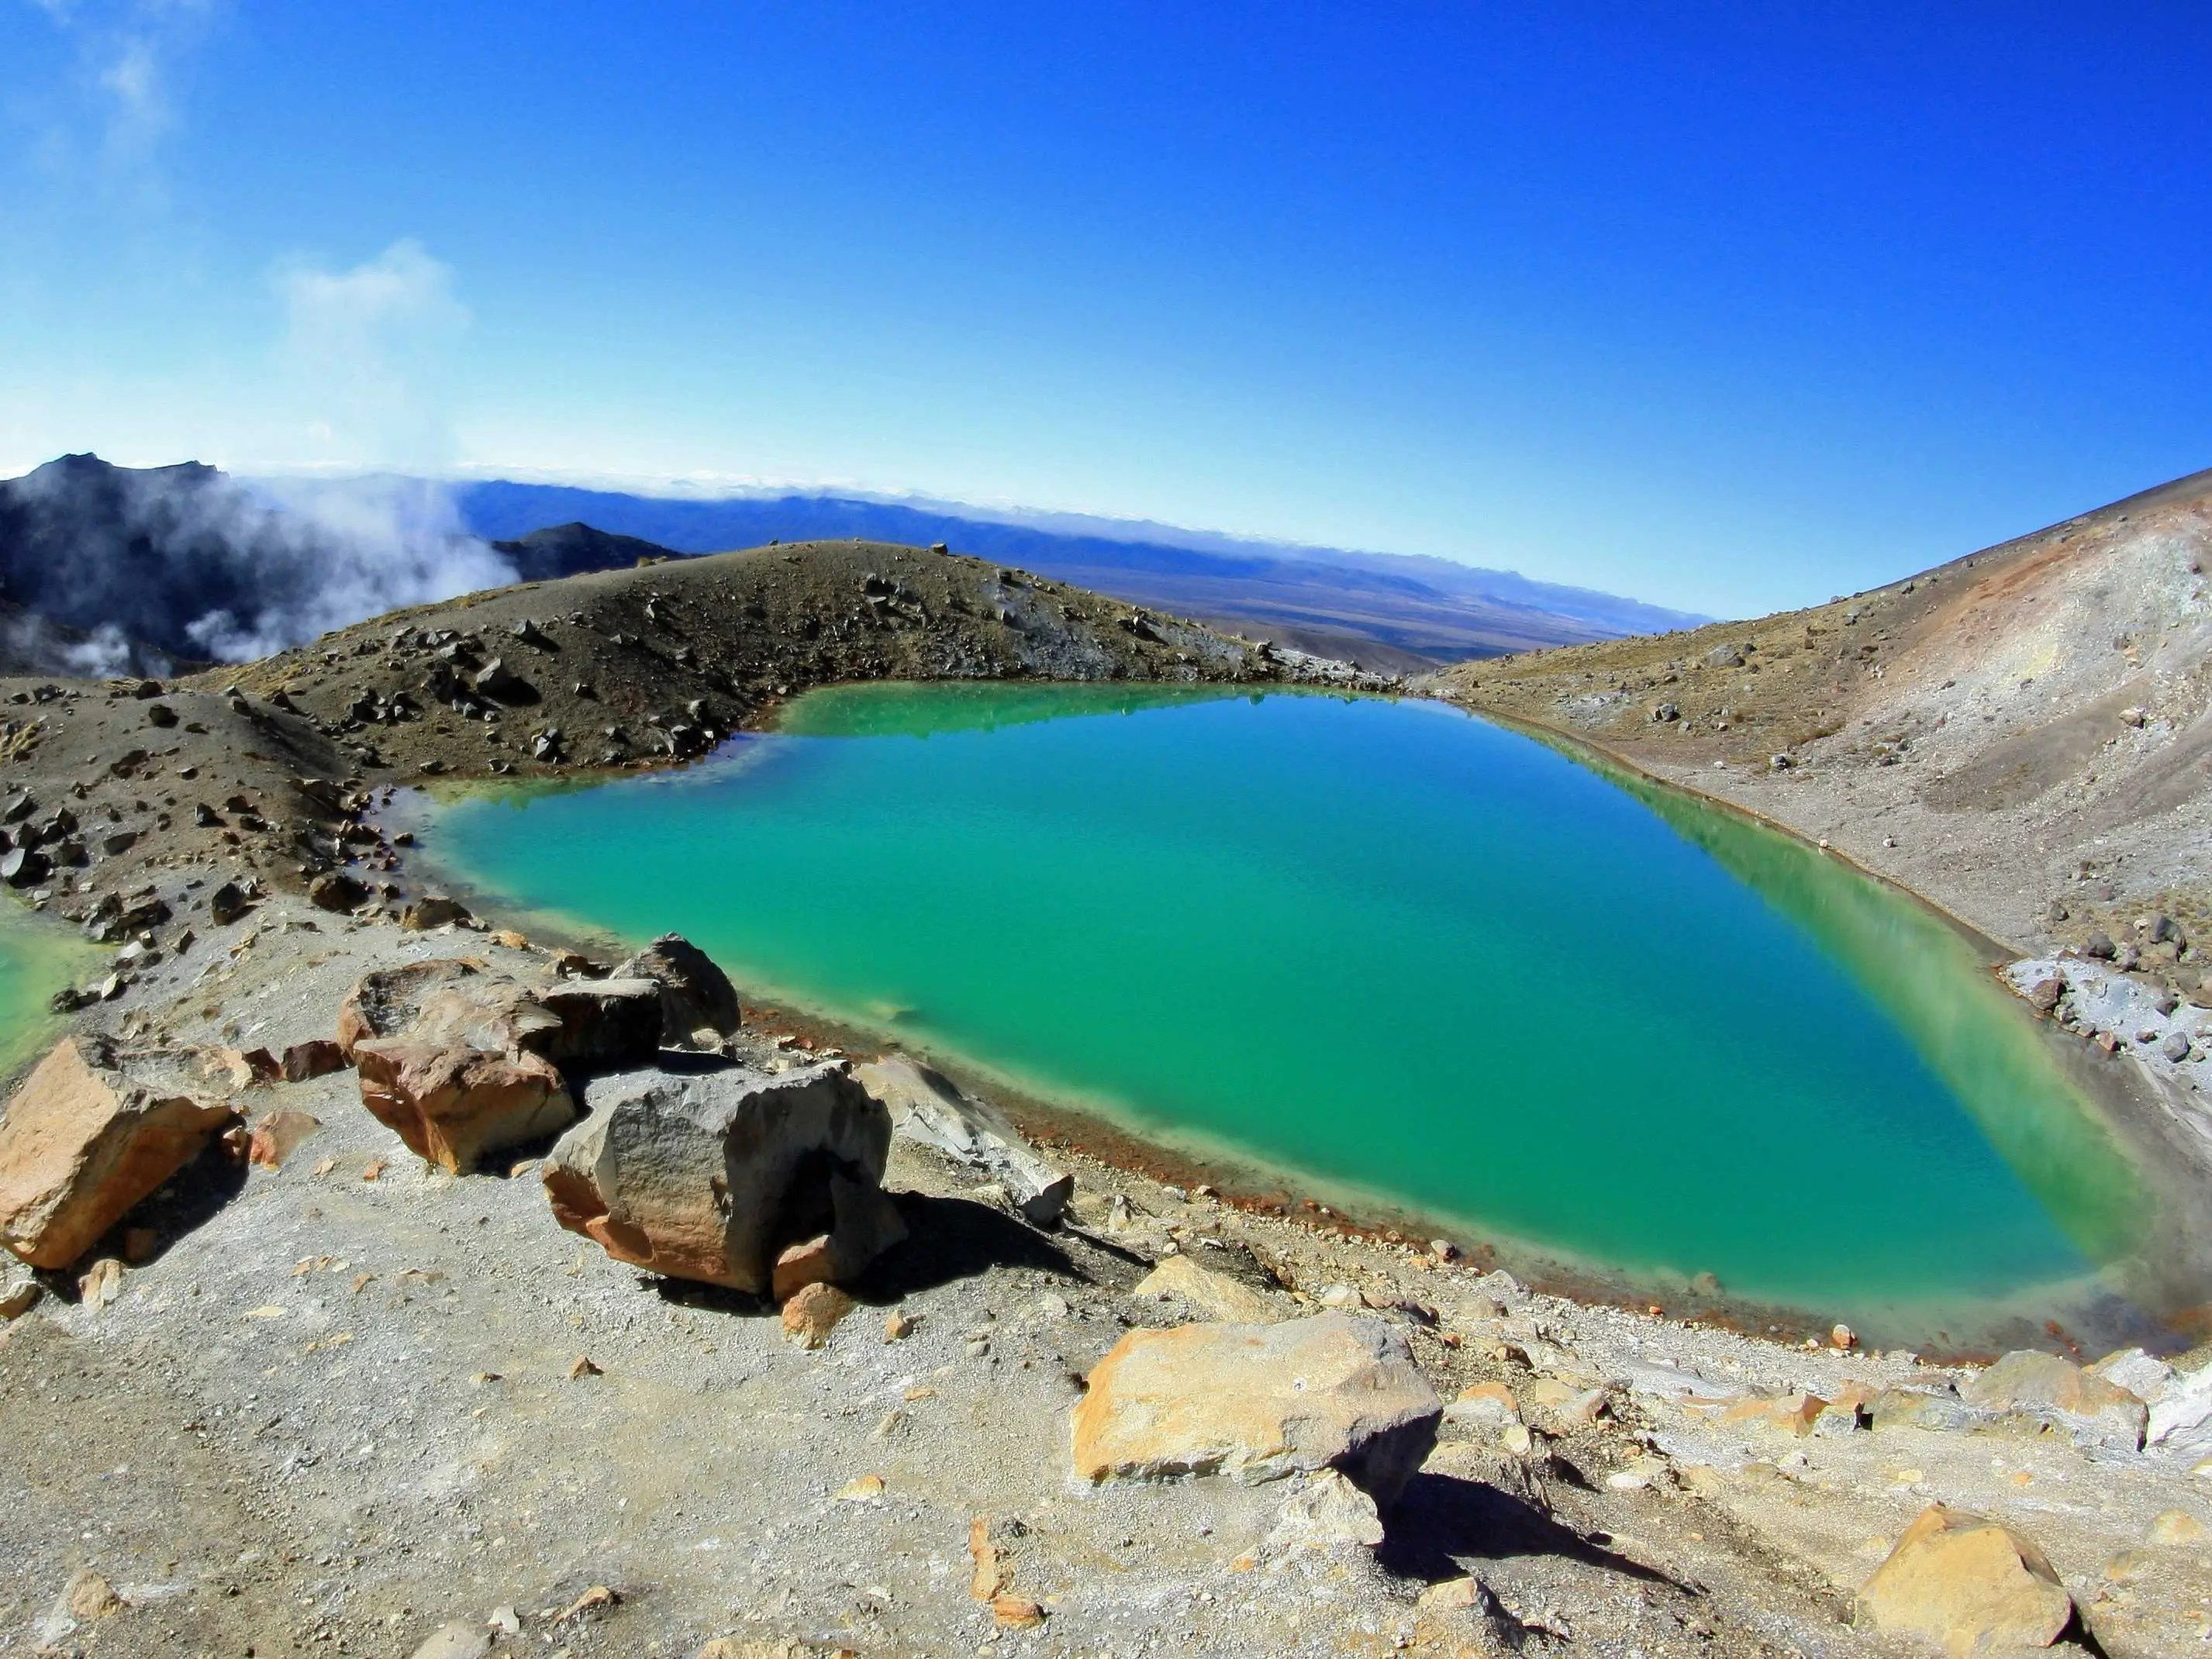 Tongariro National Park, on the North Island in New Zealand, is the oldest national park in the country and home to magnificent green lakes whose colors are the result of volcanic minerals in the water.